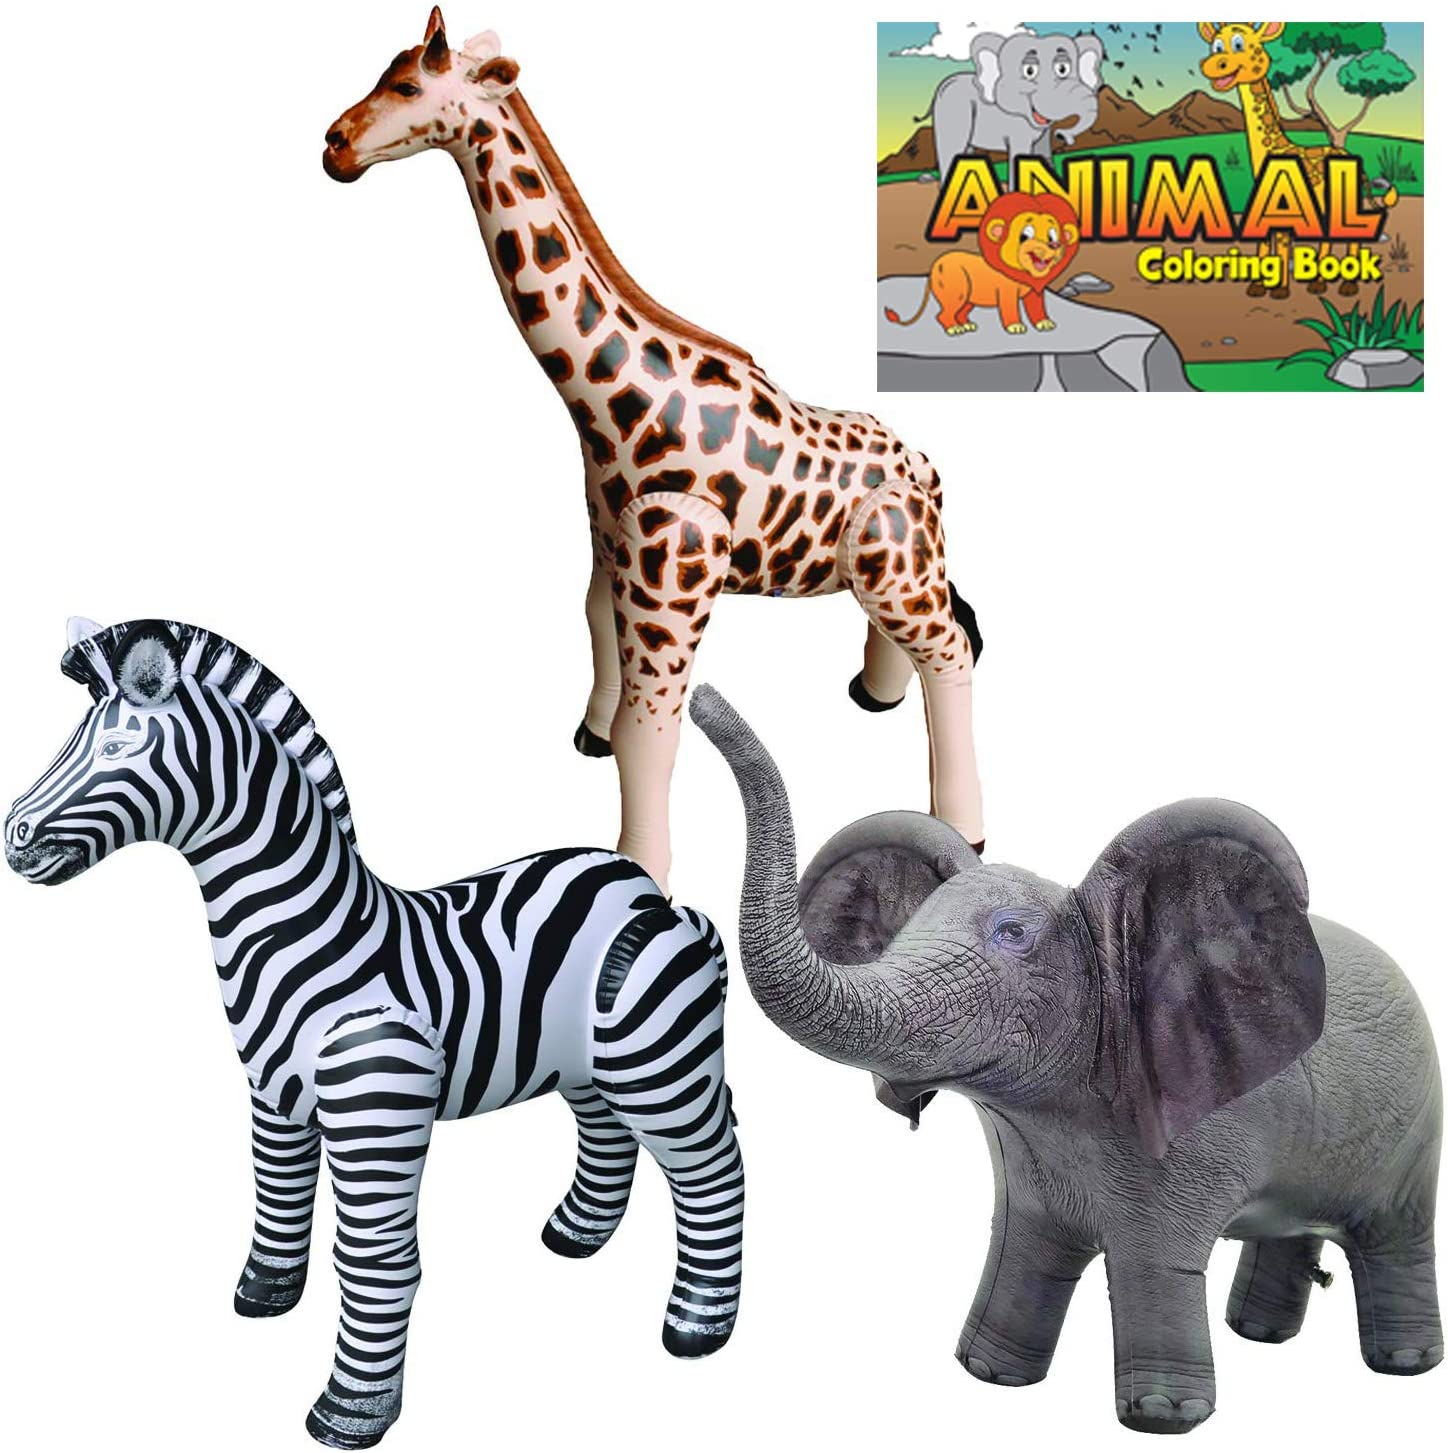 Jet Creations Safari 4 Pack Giraffe Zebra Elephant Animal Coloring Book Great for Pool, Party Decoration, Home School, School Closure, Learn from Home, JC-GZEA, Multi